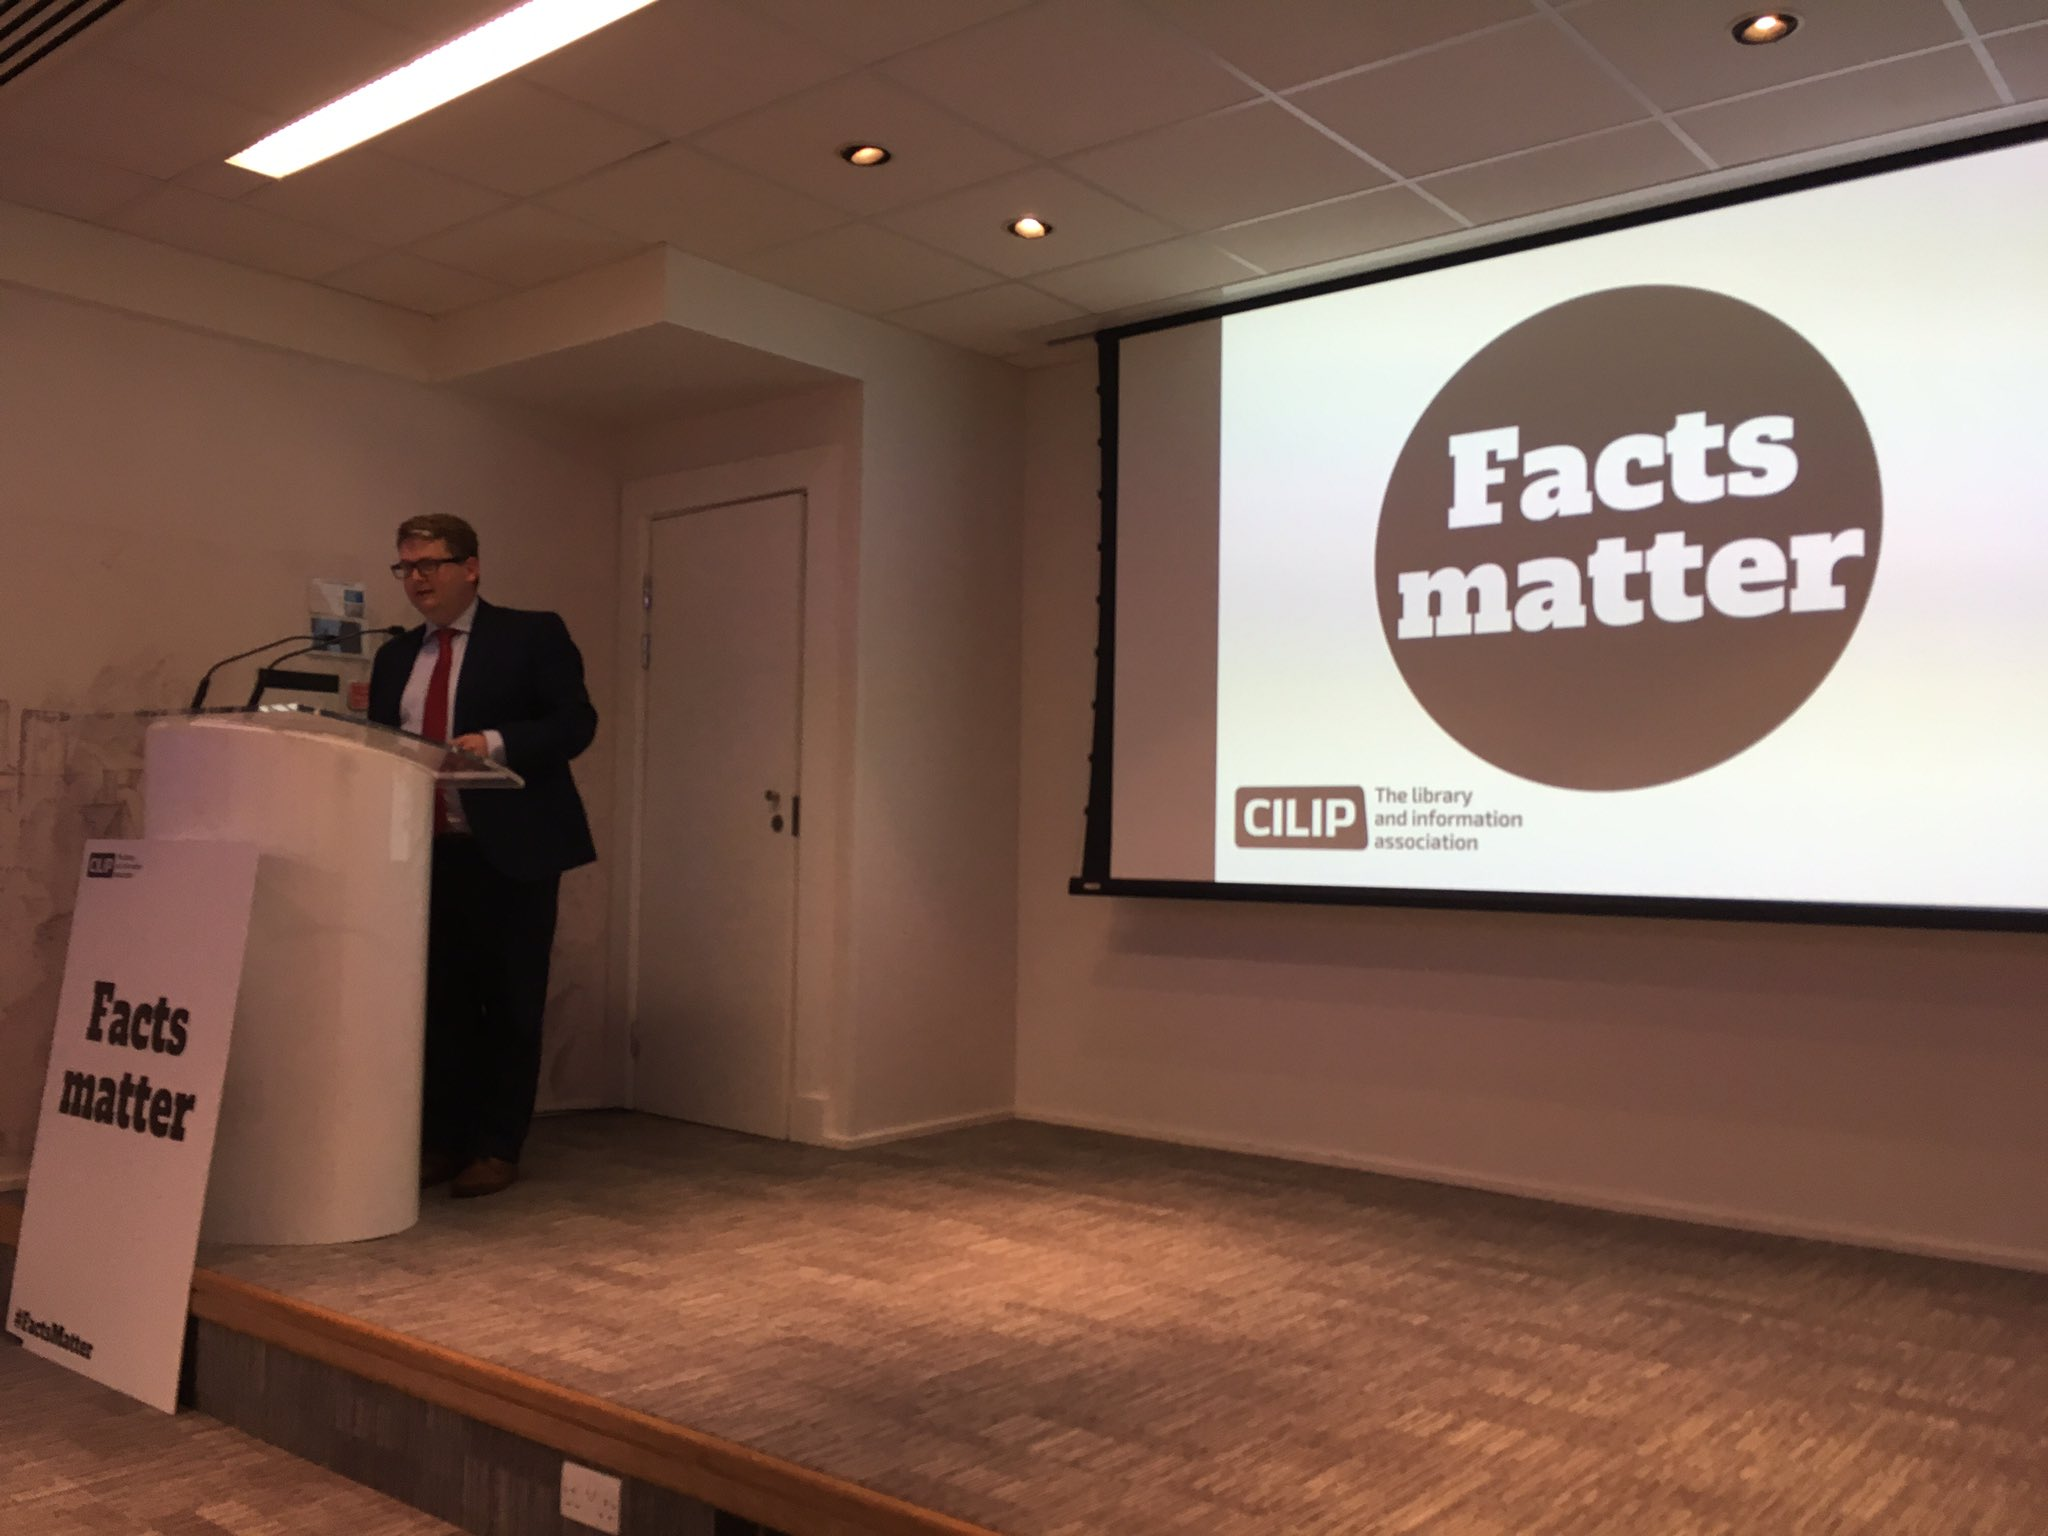 Welcome to @NickPoole1 to launch our #factsmatter event https://t.co/GylCGcYnCc